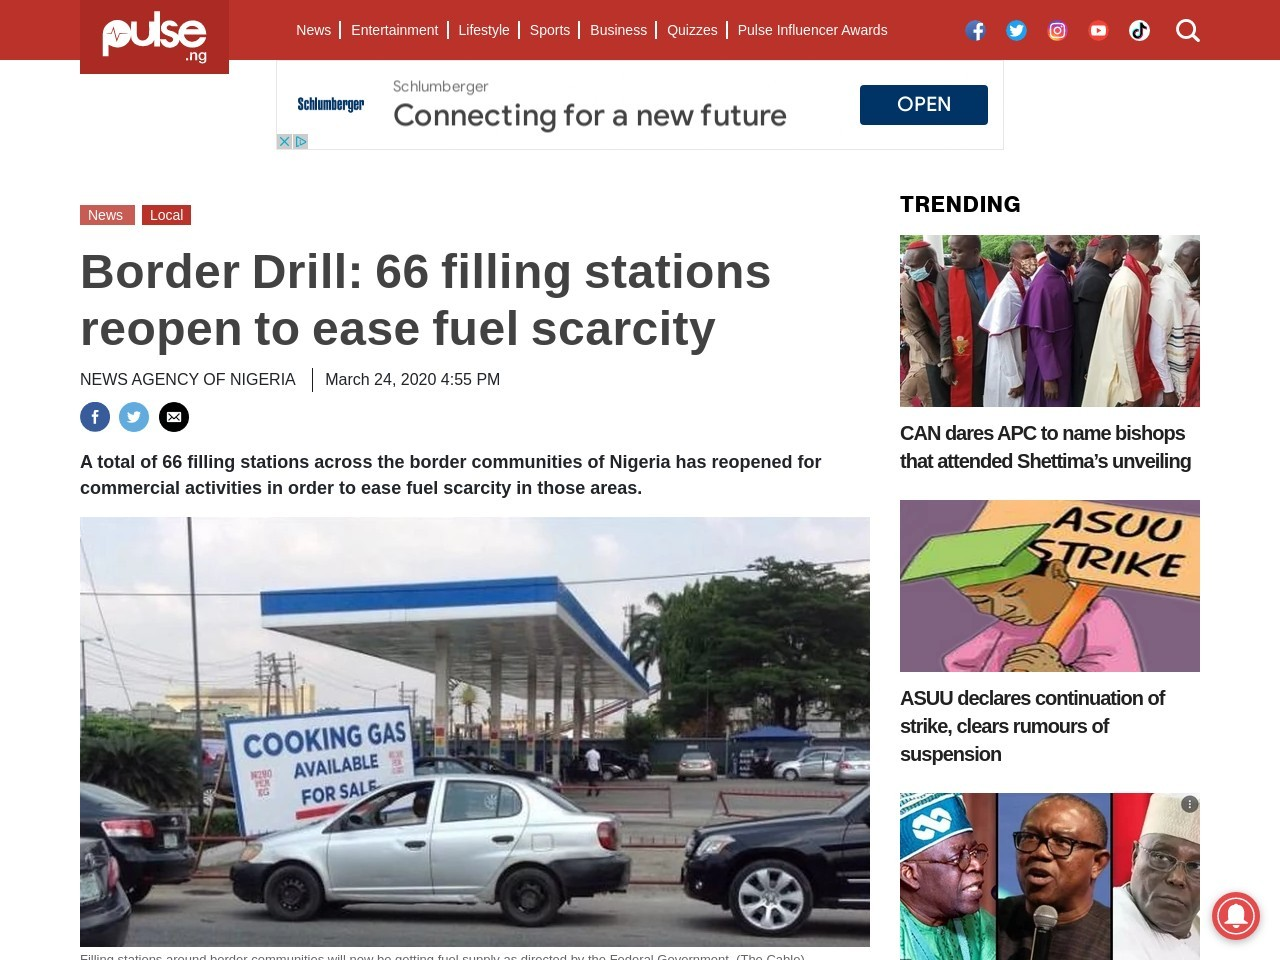 Border Drill: 66 filling stations reopen to ease fuel scarcity